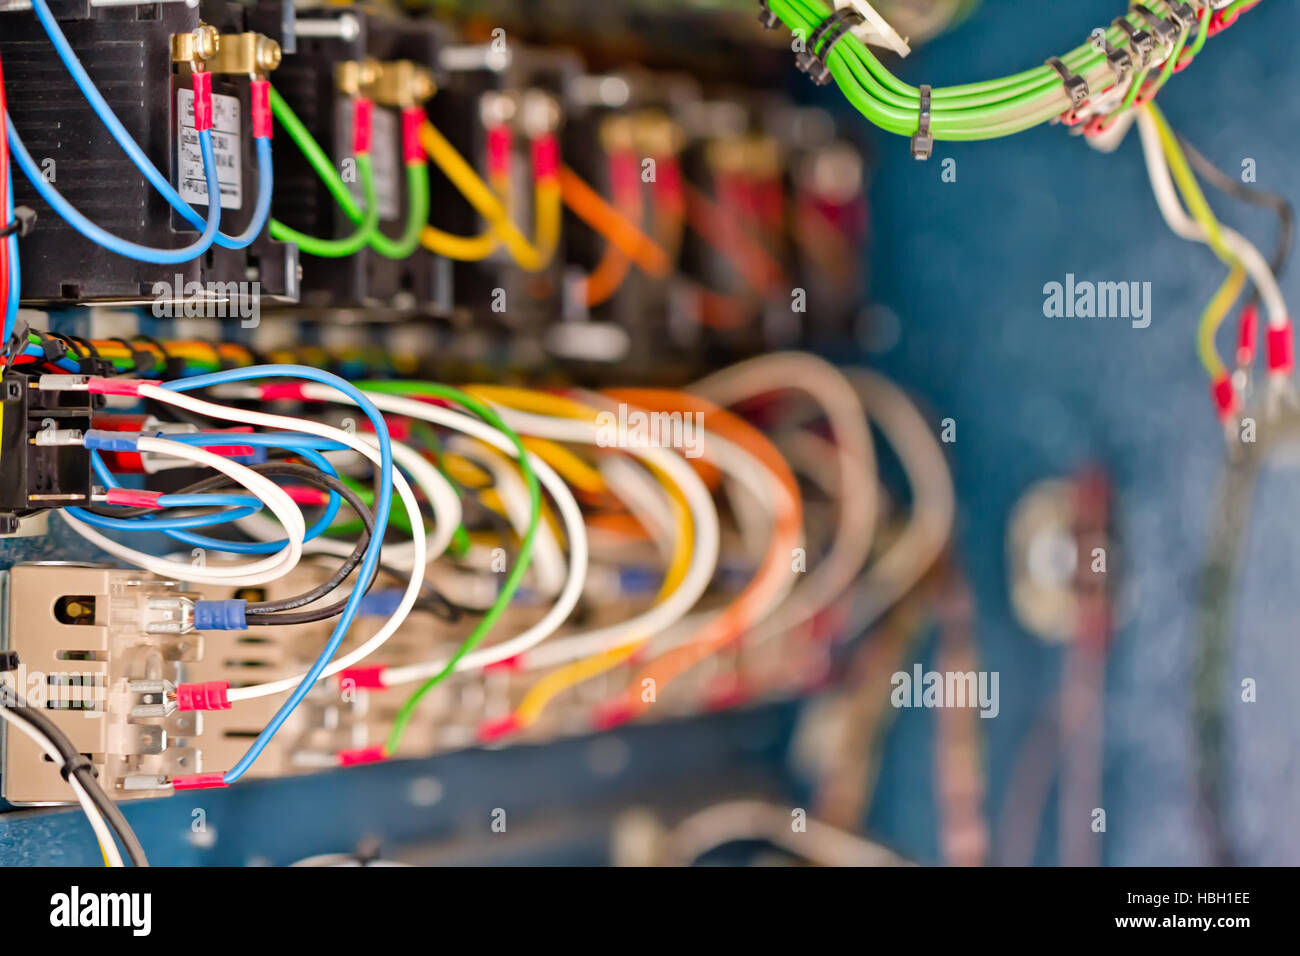 wire, terminals, transistors and capacitors - Stock Image